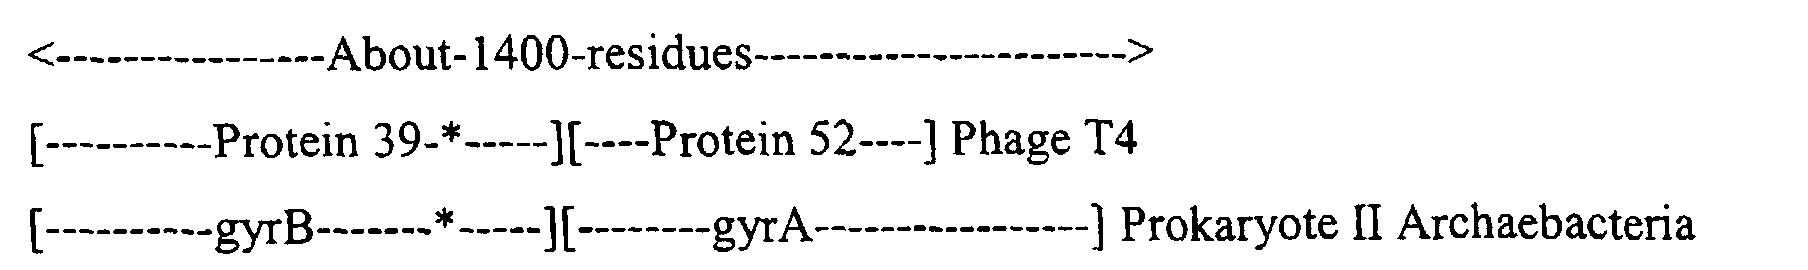 Sequence-determined DNA fragments and corresponding polypeptides